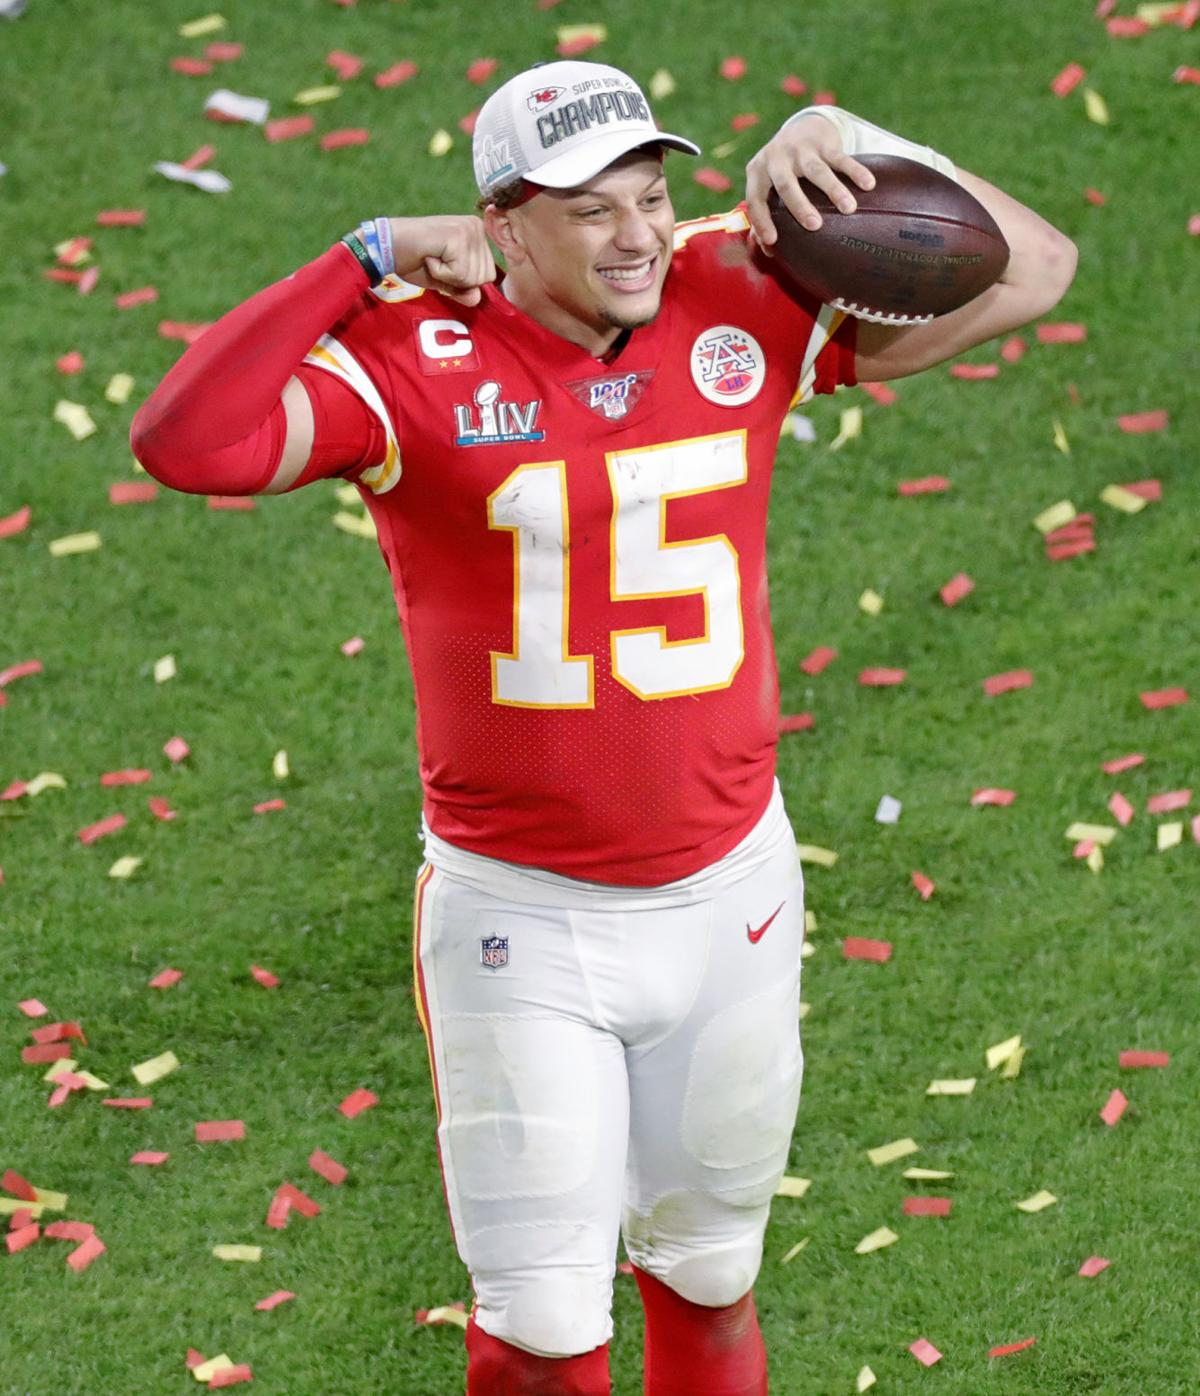 Kansas City Chiefs quarterback Patrick Mahomes (15) celebrates after winning Super Bowl LIV, 31-20, against the San Francisco 49ers at Hard Rock Stadium in Miami Gardens, Fla., on Sunday, Feb. 2, 2020.